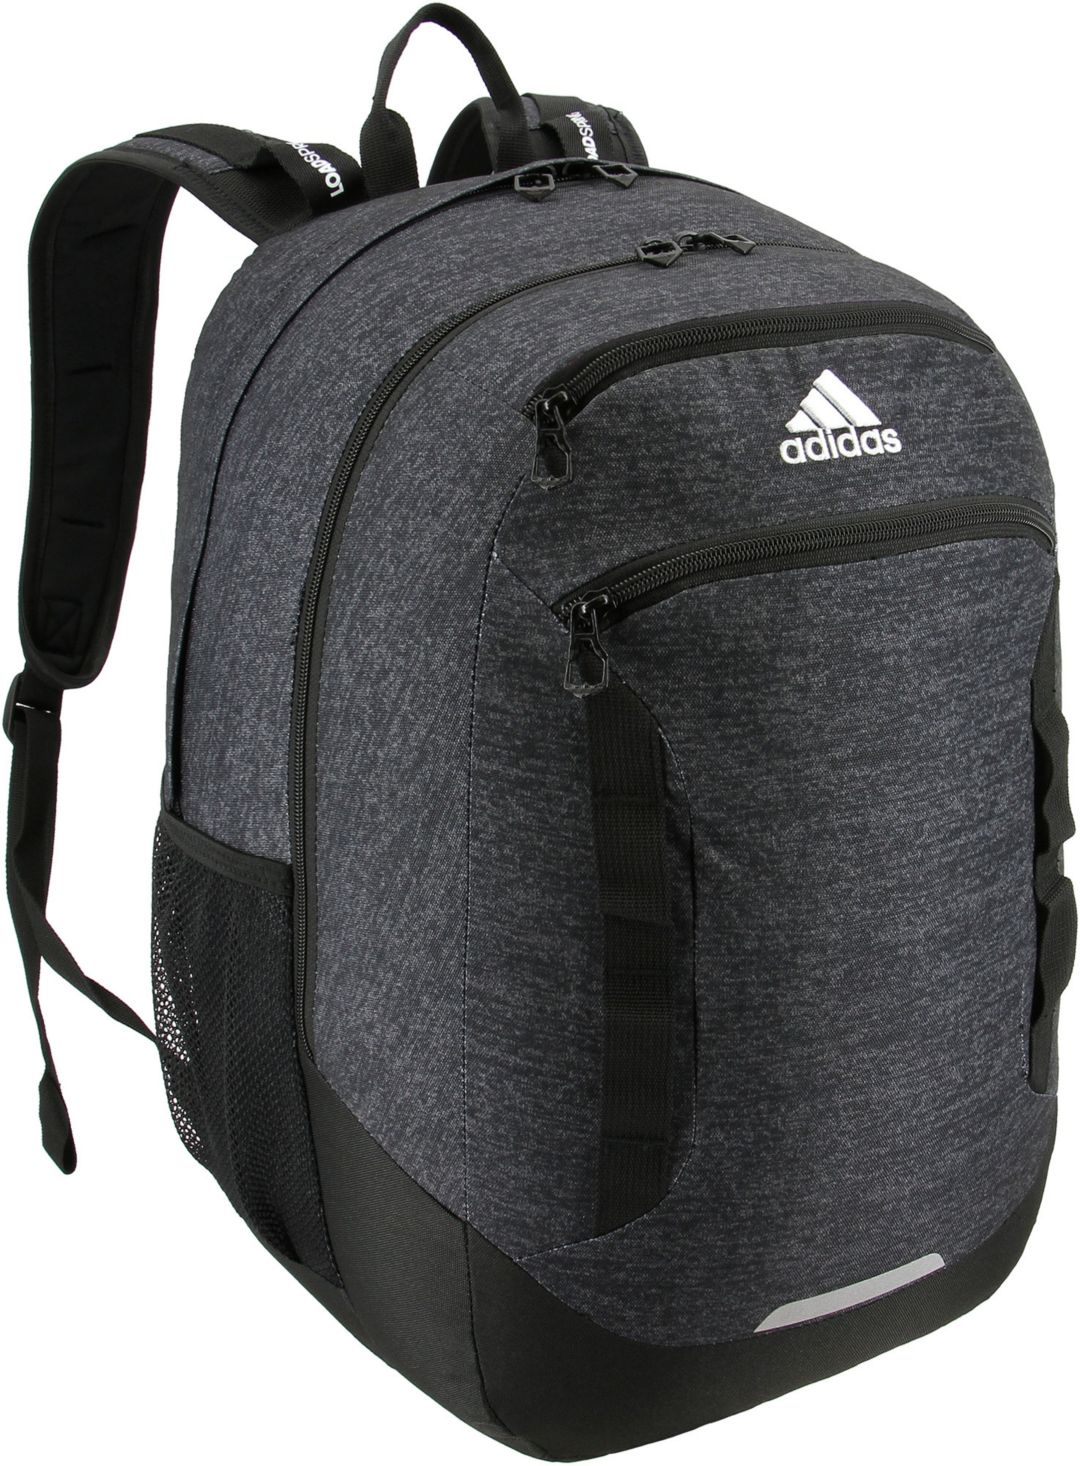 1701b3fb60d adidas Excel III Backpack | DICK'S Sporting Goods